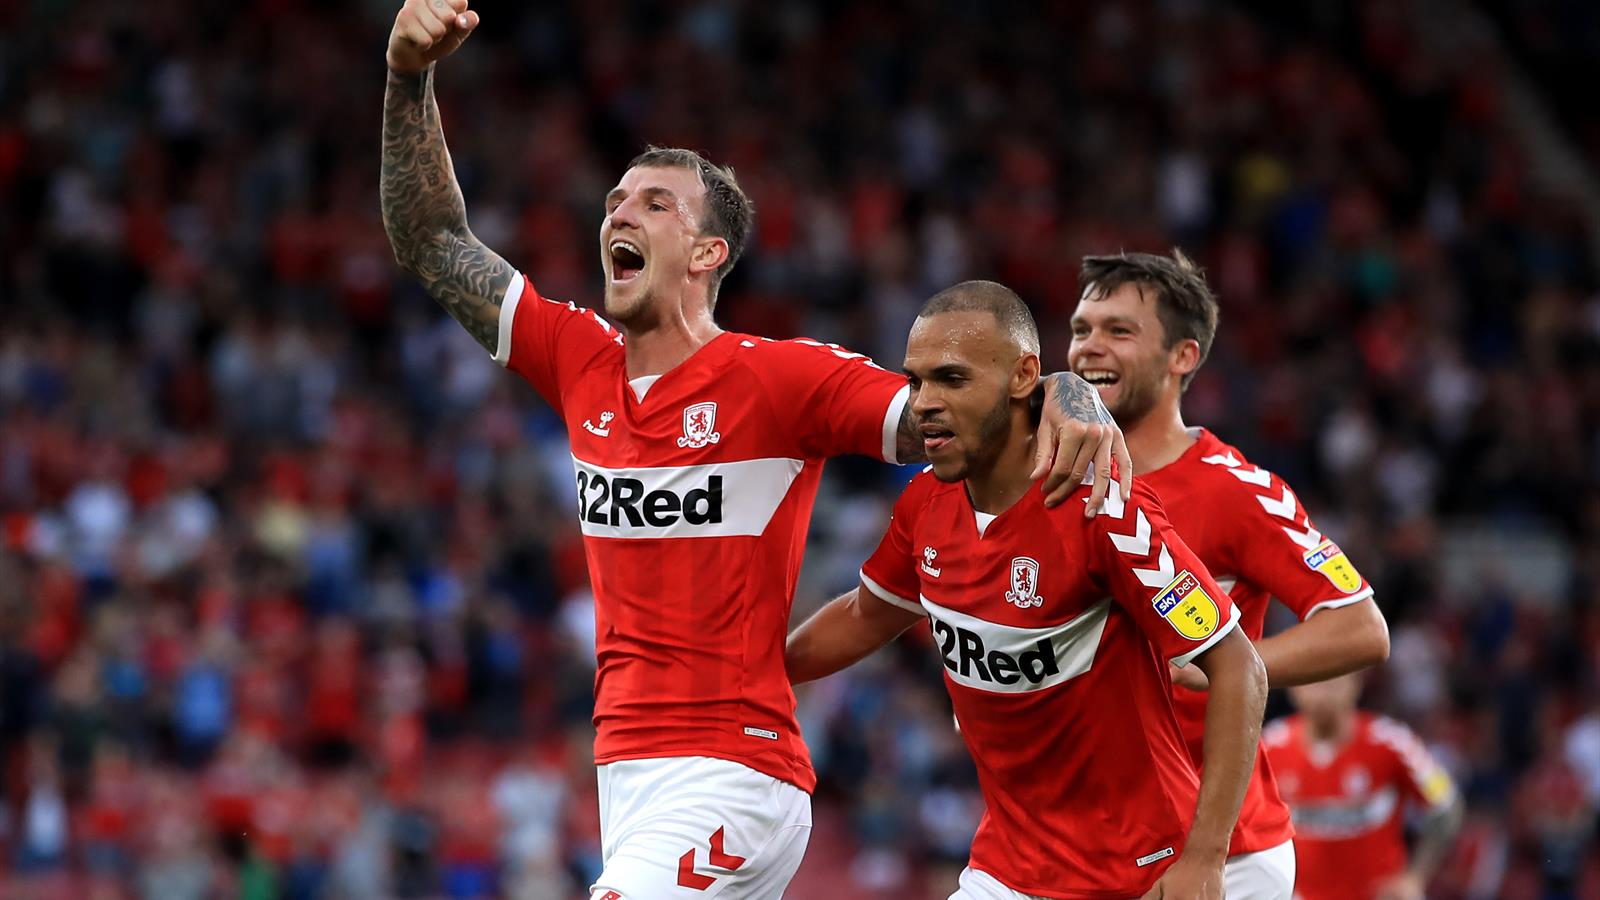 middlesbrough brush aside sheffield united